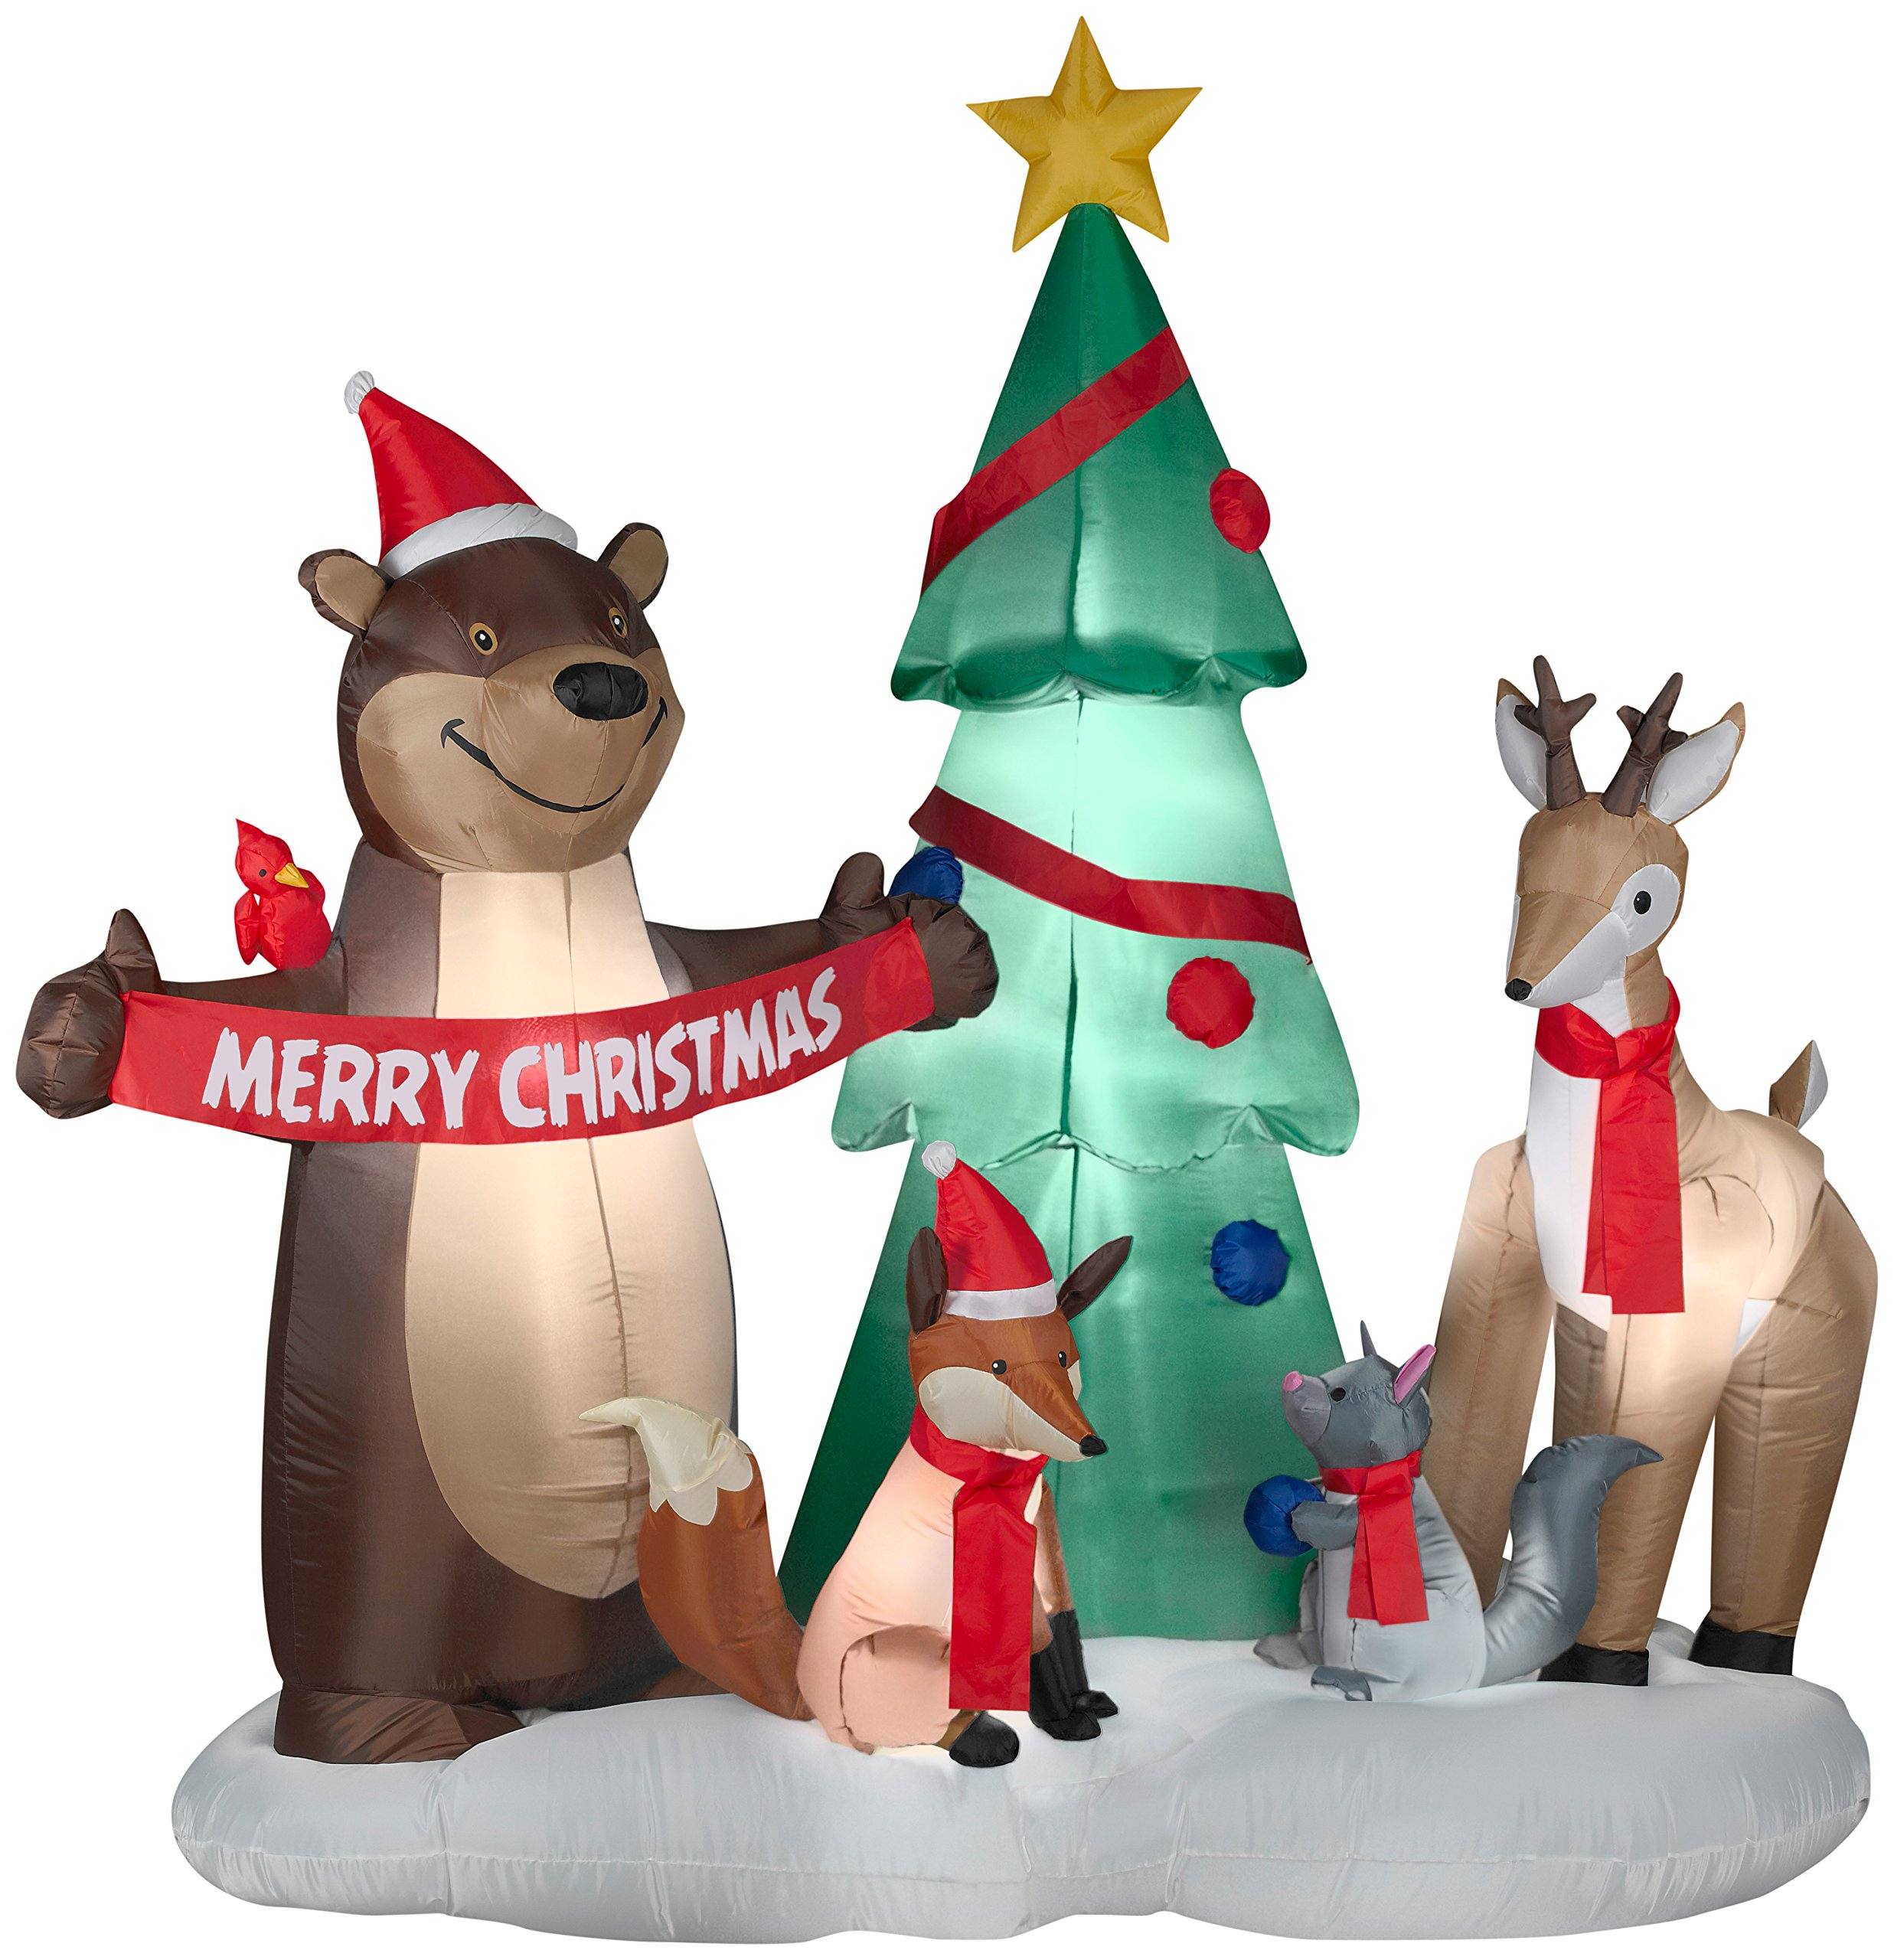 Gemmy Christmas Inflatable Forest Animal with Merry Christmas Banner Scene, 6 1/2-Feet